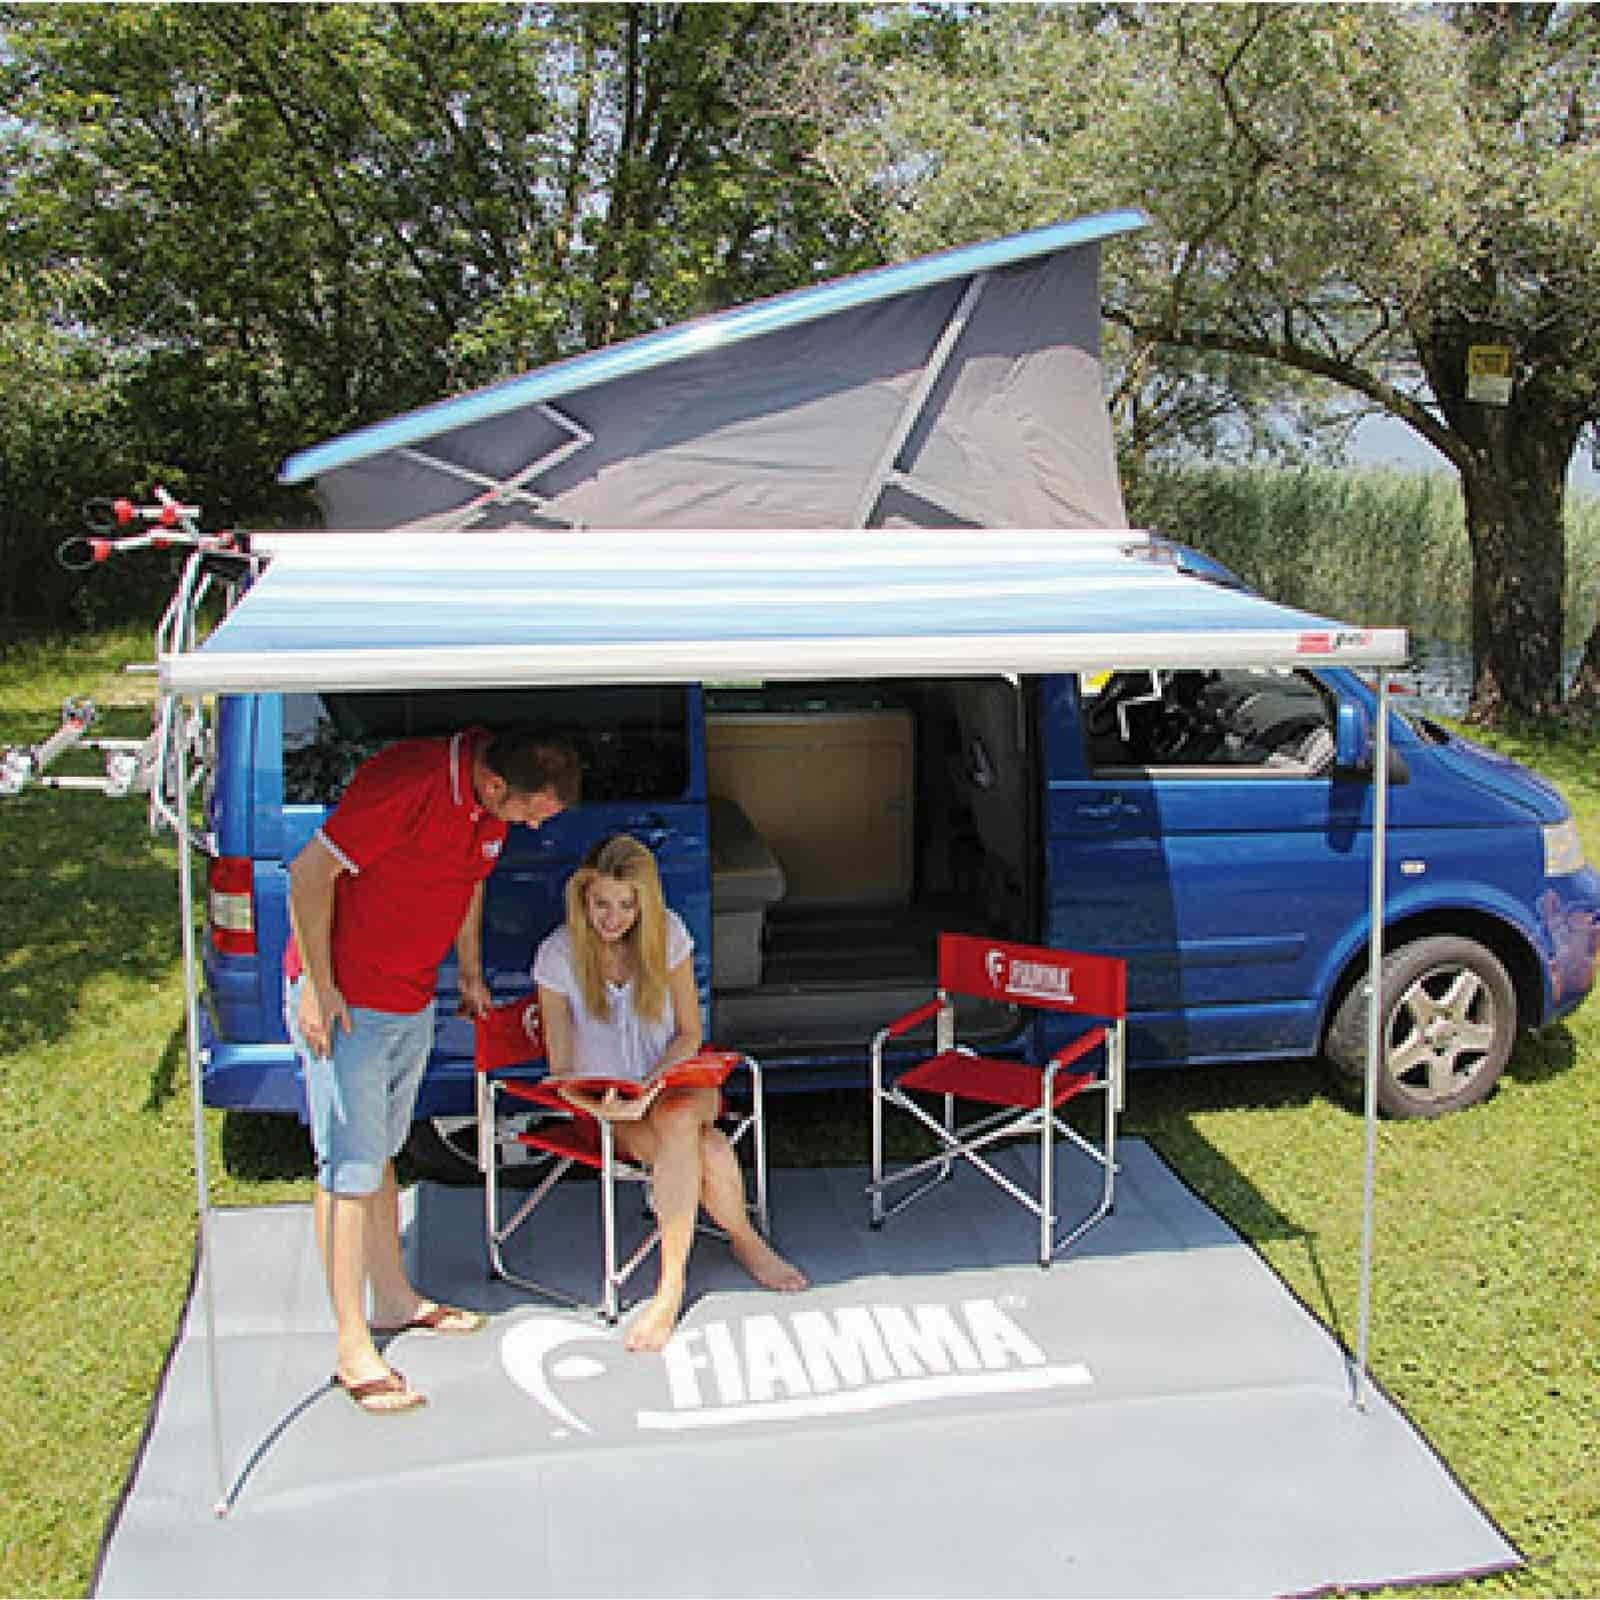 motor xl design awning awesome to air rally kampa size motorhome home awnings fit ideas fixed inspirational of